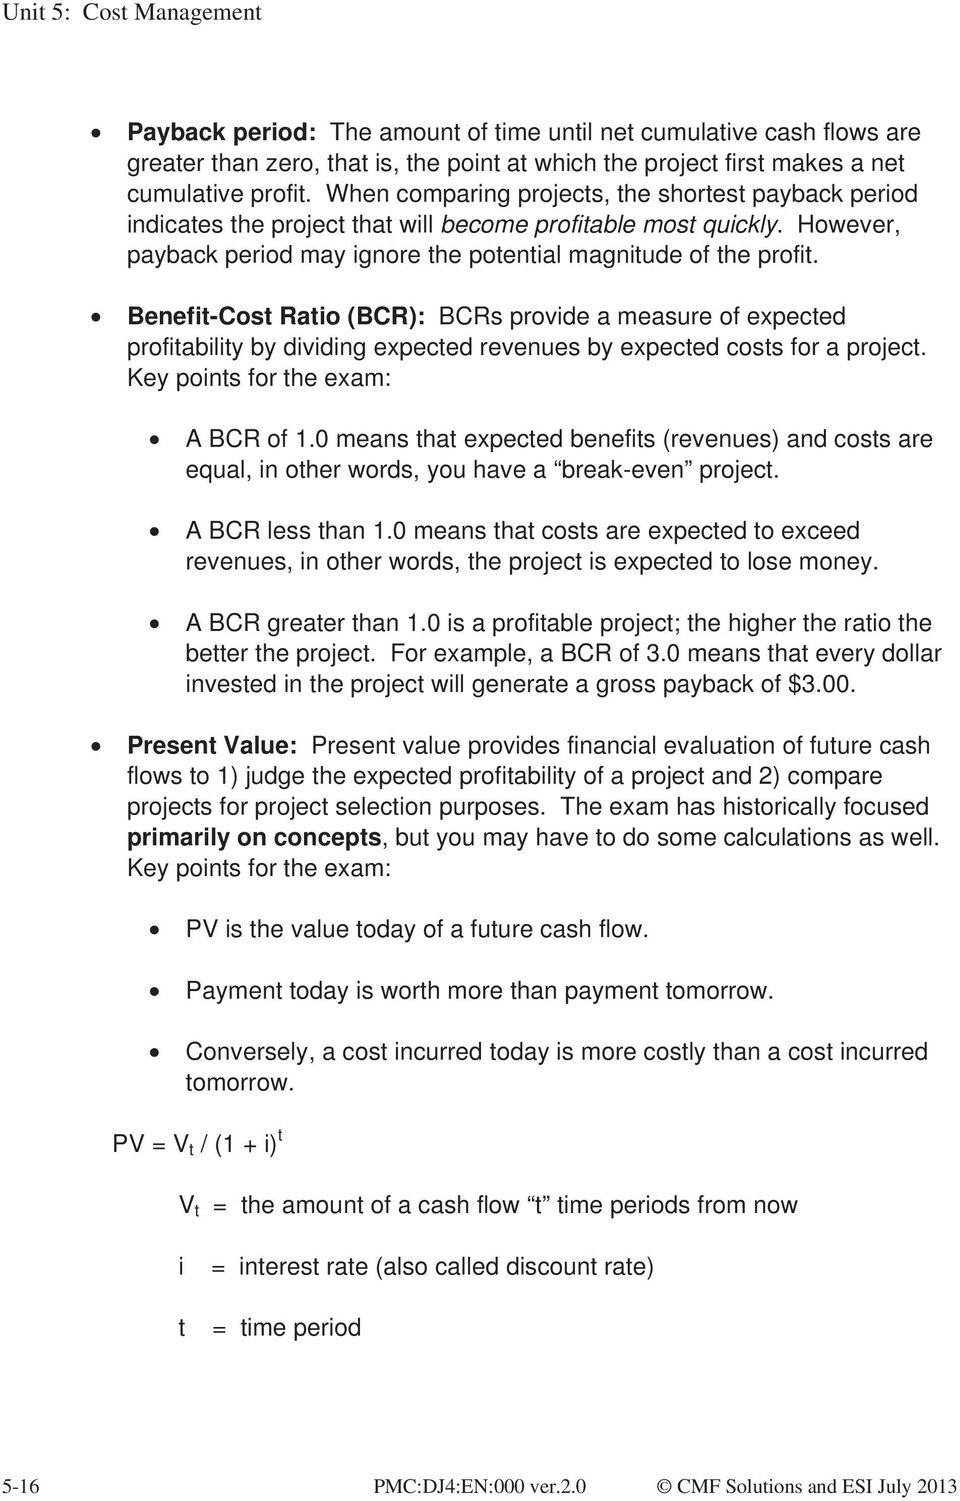 Benefit-Cost Ratio (BCR): BCRs provide a measure of expected profitability by dividing expected revenues by expected costs for a project. Key points for the exam: A BCR of 1.